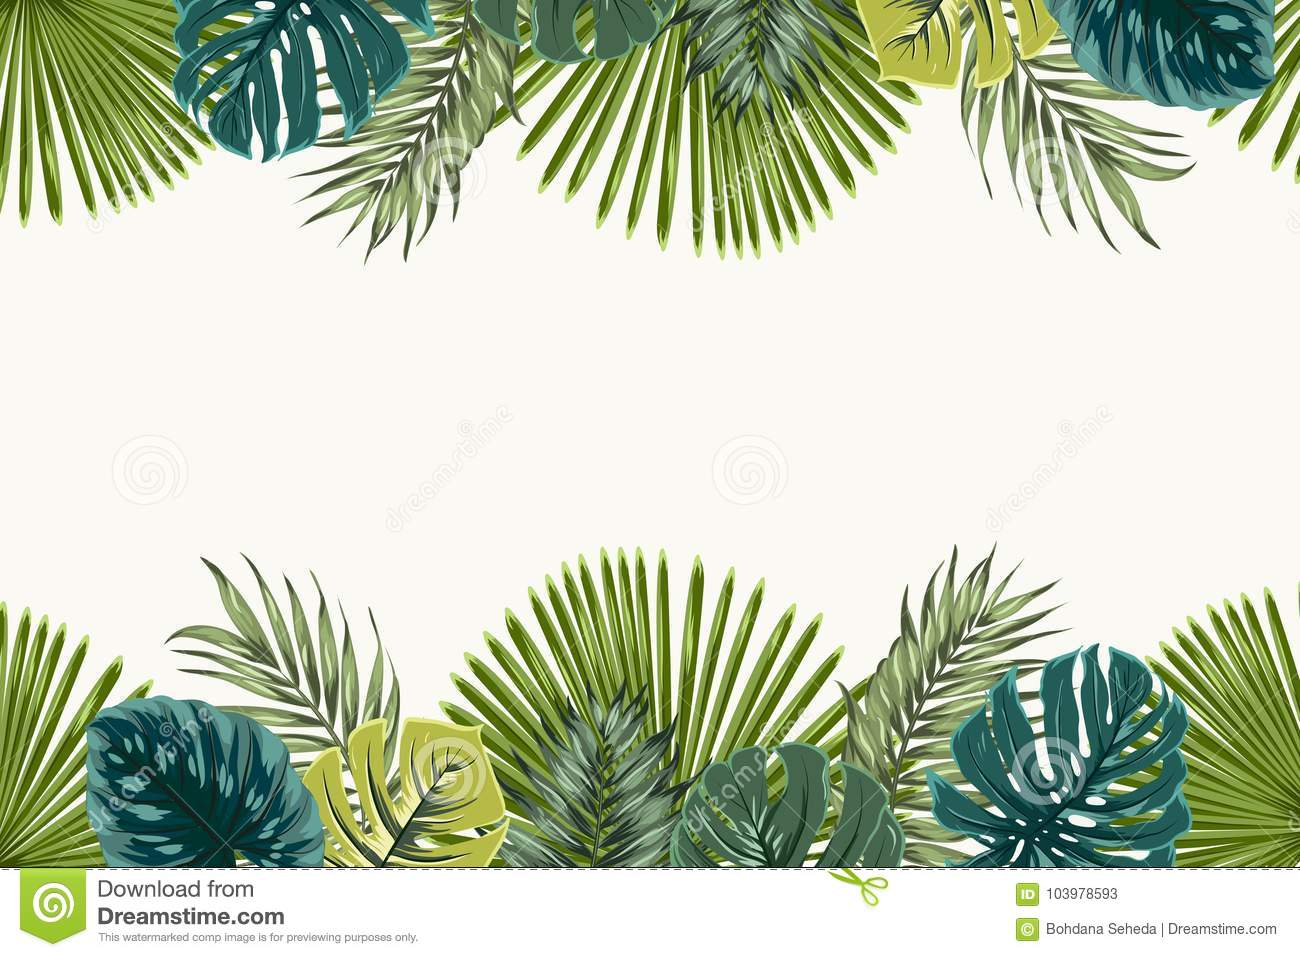 Exotic Tropical Leaves Top Bottom Border Frame Stock Vector Illustration Of Background Border 103978593 How do you do tropical rainforest landscaping? https www dreamstime com exotic tropical leaves top bottom border frame jungle rainforest bright green navy turquoise palm tree monstera template image103978593